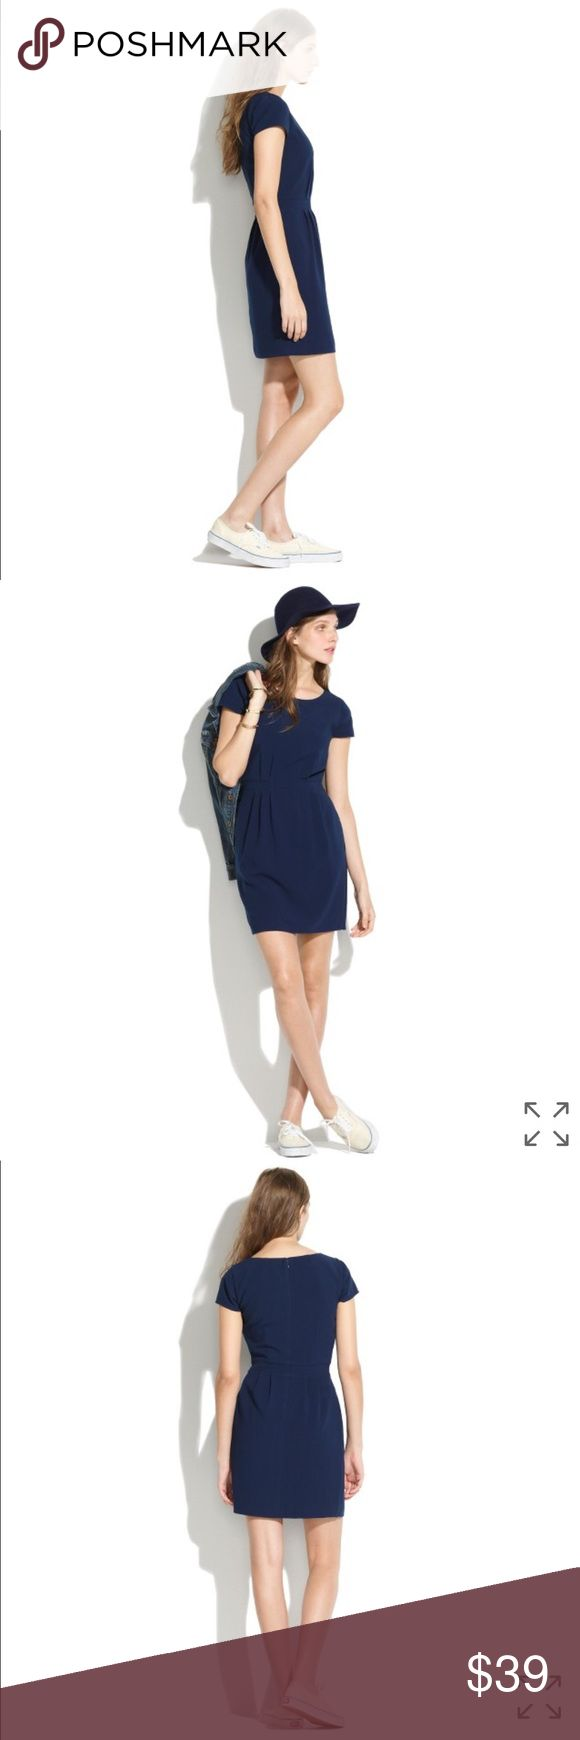 Madewell Navy cap-sleeve Dress Minimalist and modern. Nipped and pleated at the waist. Fitted at the waist. Unexpected charming. Goes well with flat during the work day or heels for happy hour. Madewell Dresses